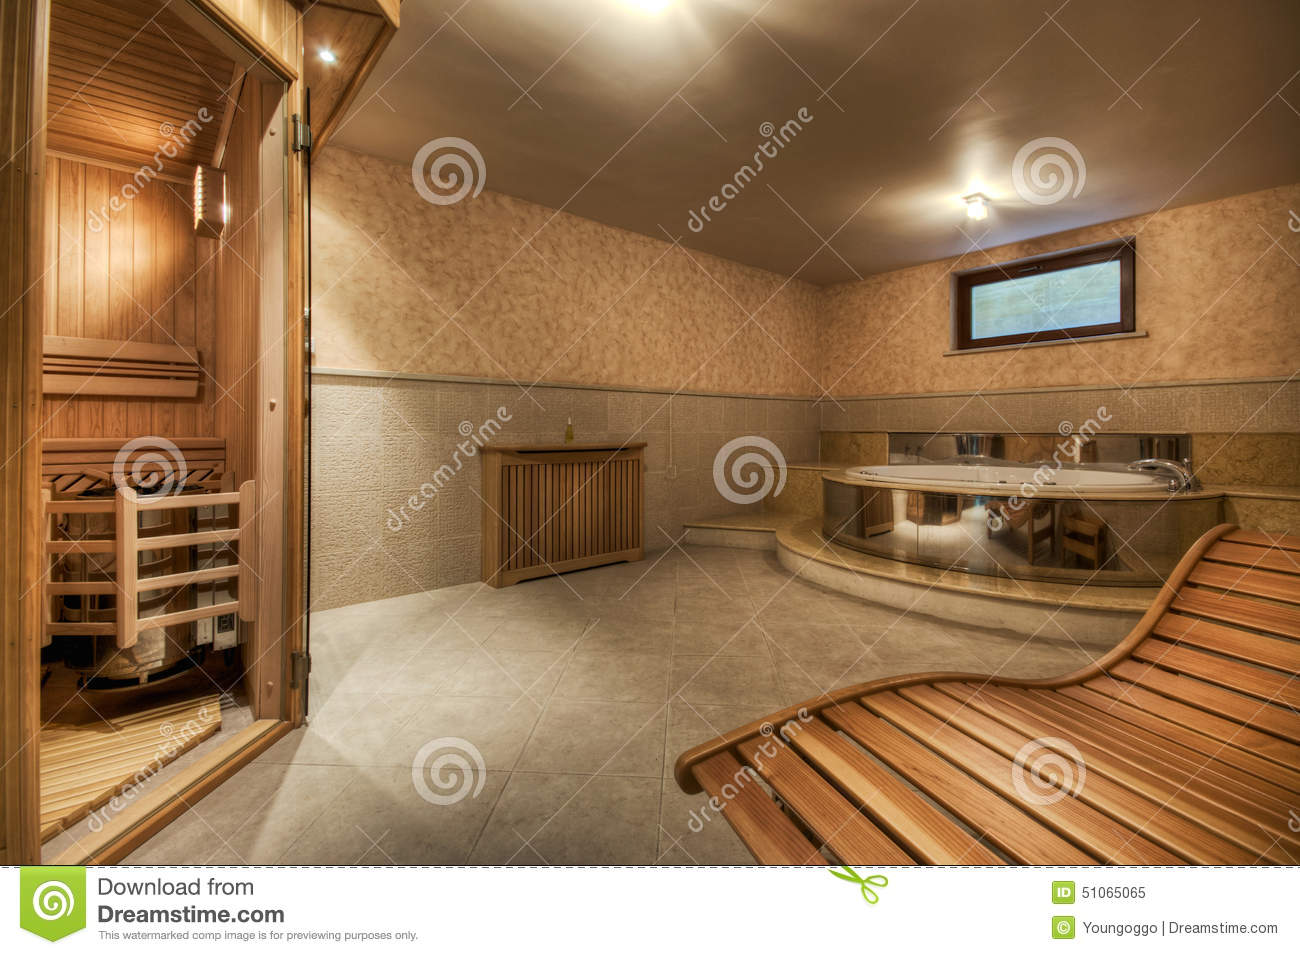 sauna et jacuzzi modernes et confortables image stock image 51065065. Black Bedroom Furniture Sets. Home Design Ideas